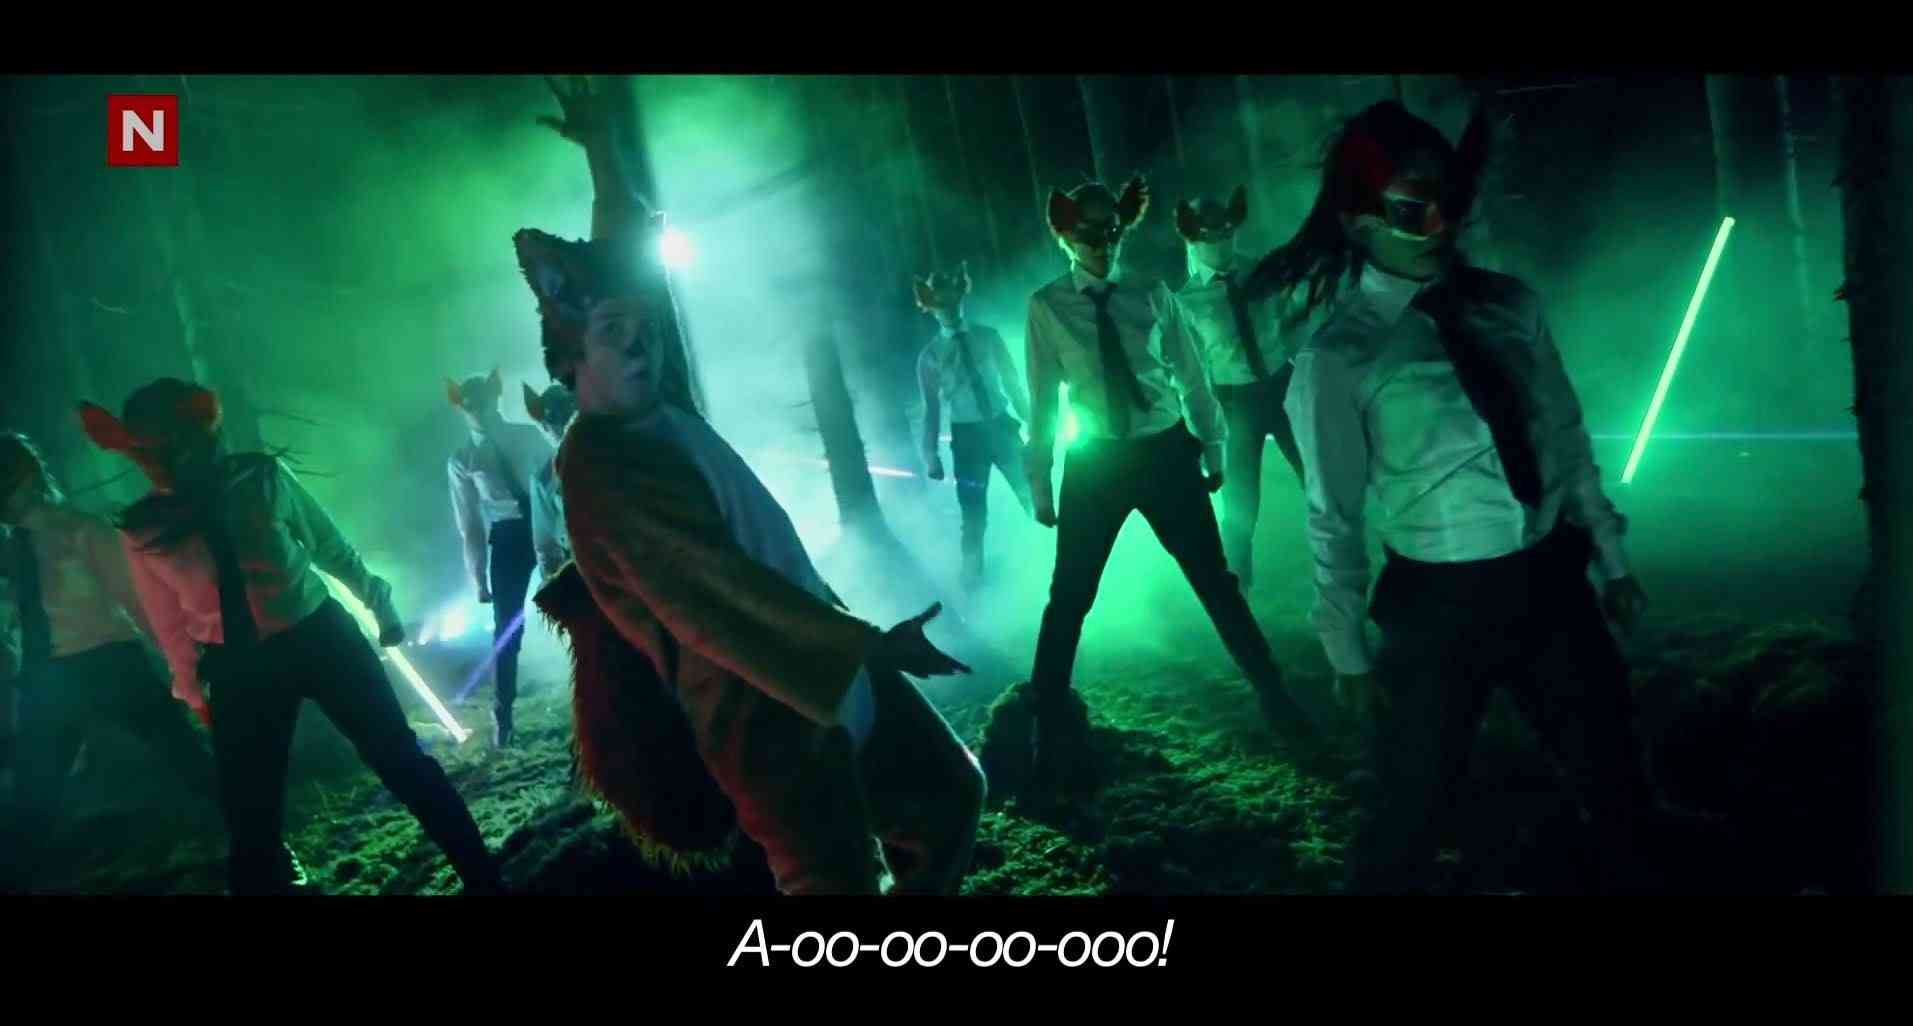 Ylvis - The Fox (What Does The Fox Say?) [Official music video HD] - YouTube